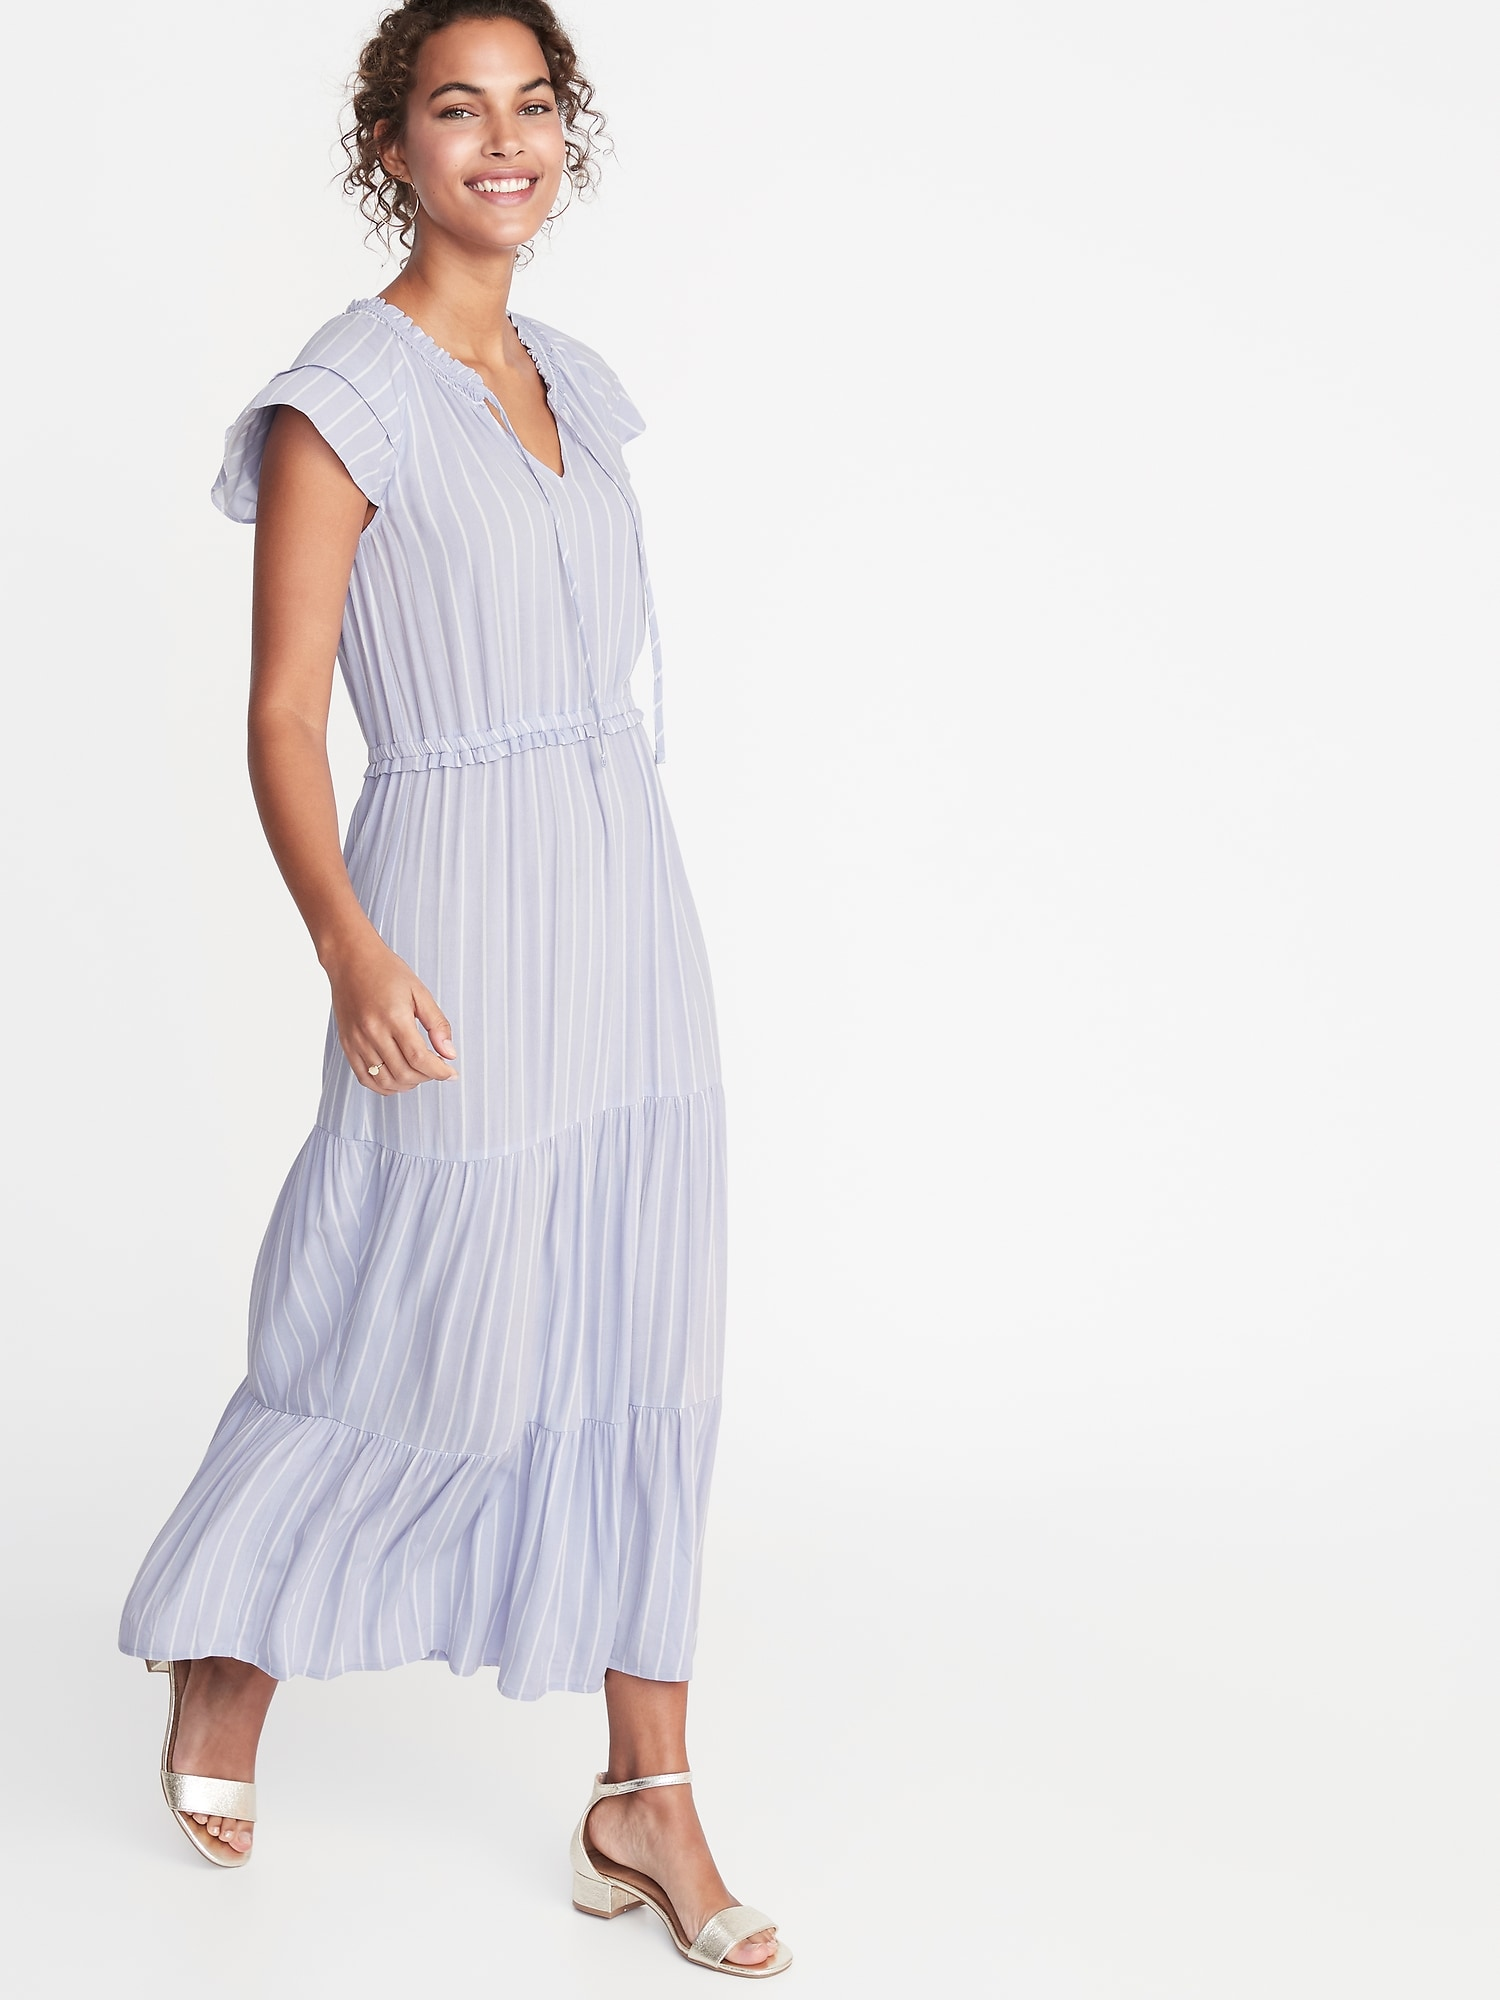 Dept Maxi Jurk.Waist Defined Crepe Maxi Dress For Women Old Navy